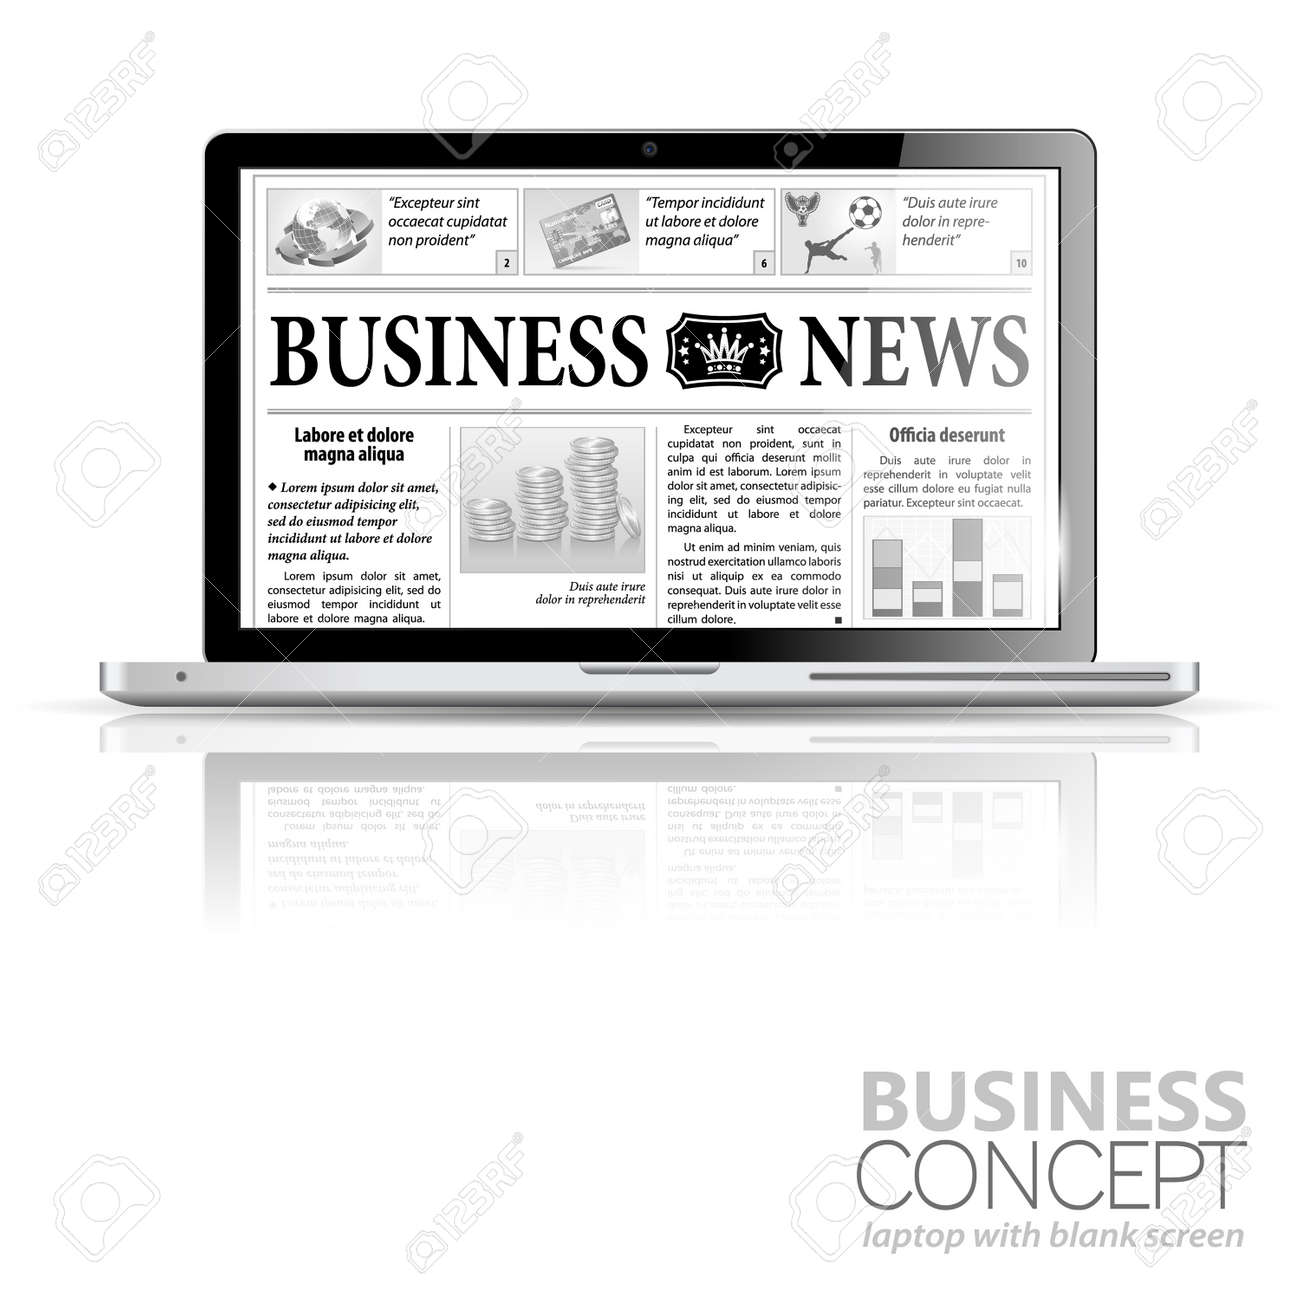 Digital News Concept with Business Newspaper on screen Laptop, icon isolated on white Stock Vector - 16325452